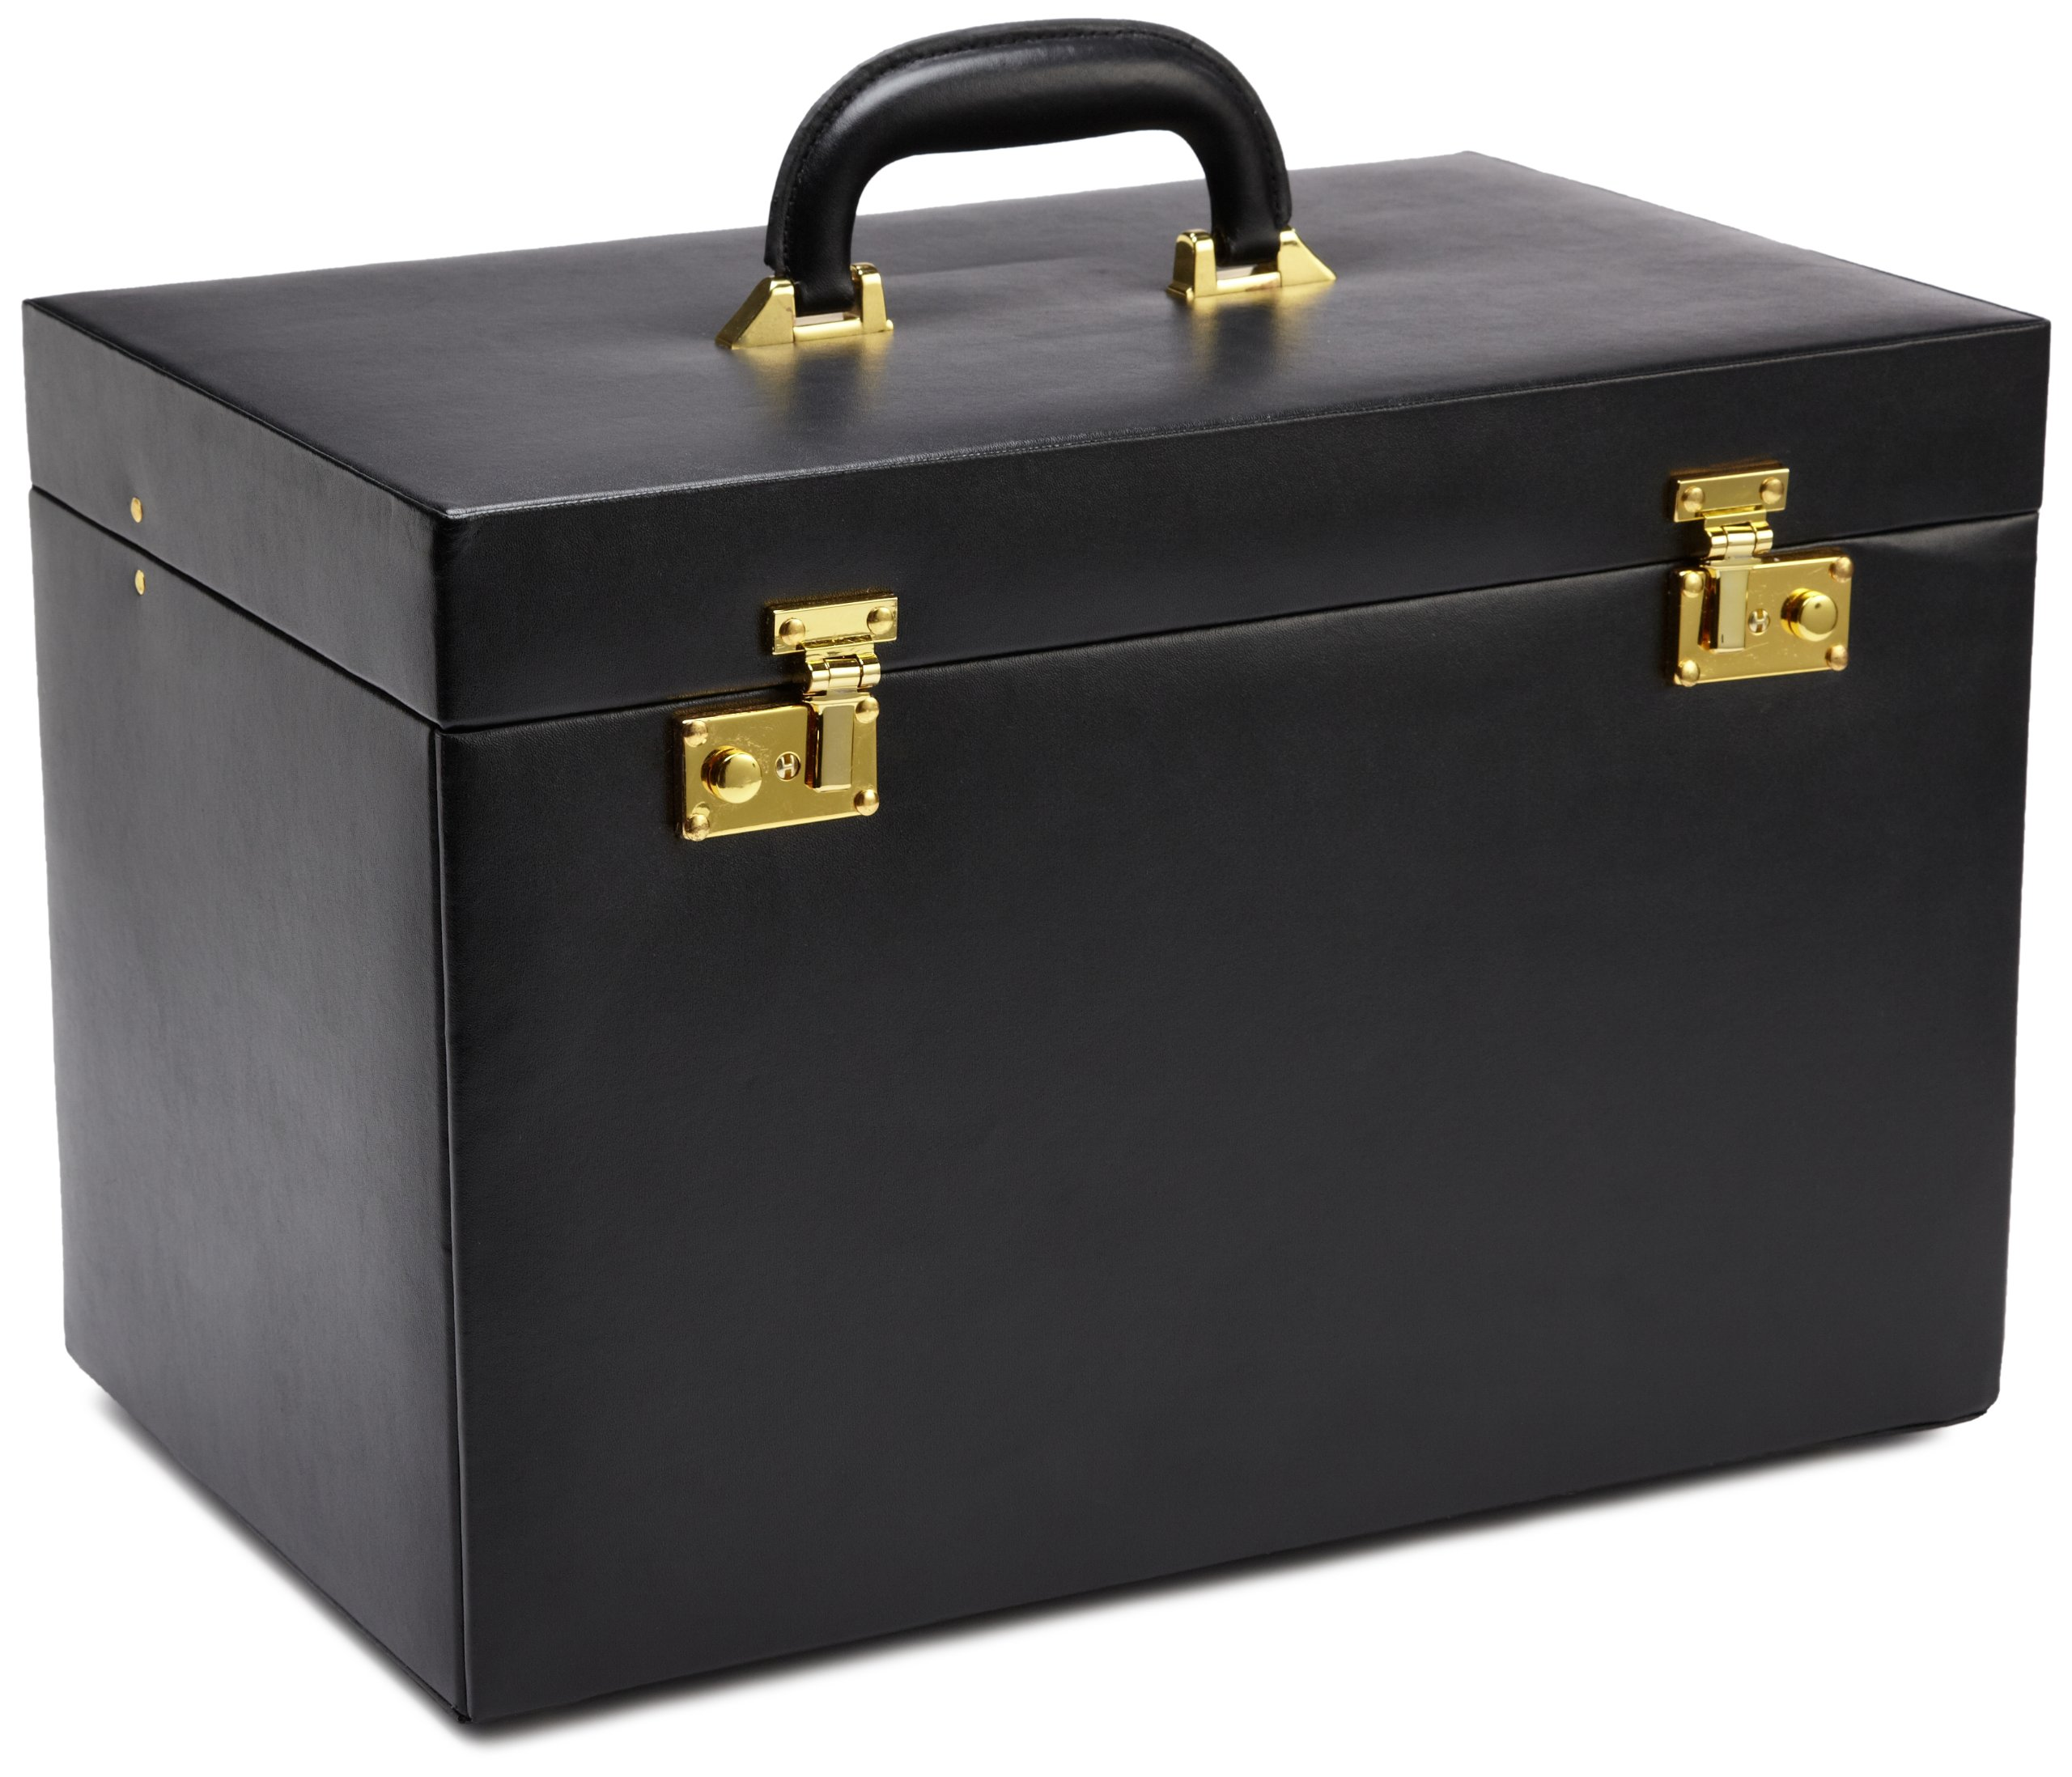 WOLF 280802 Heritage Jewelry Trunk, Black